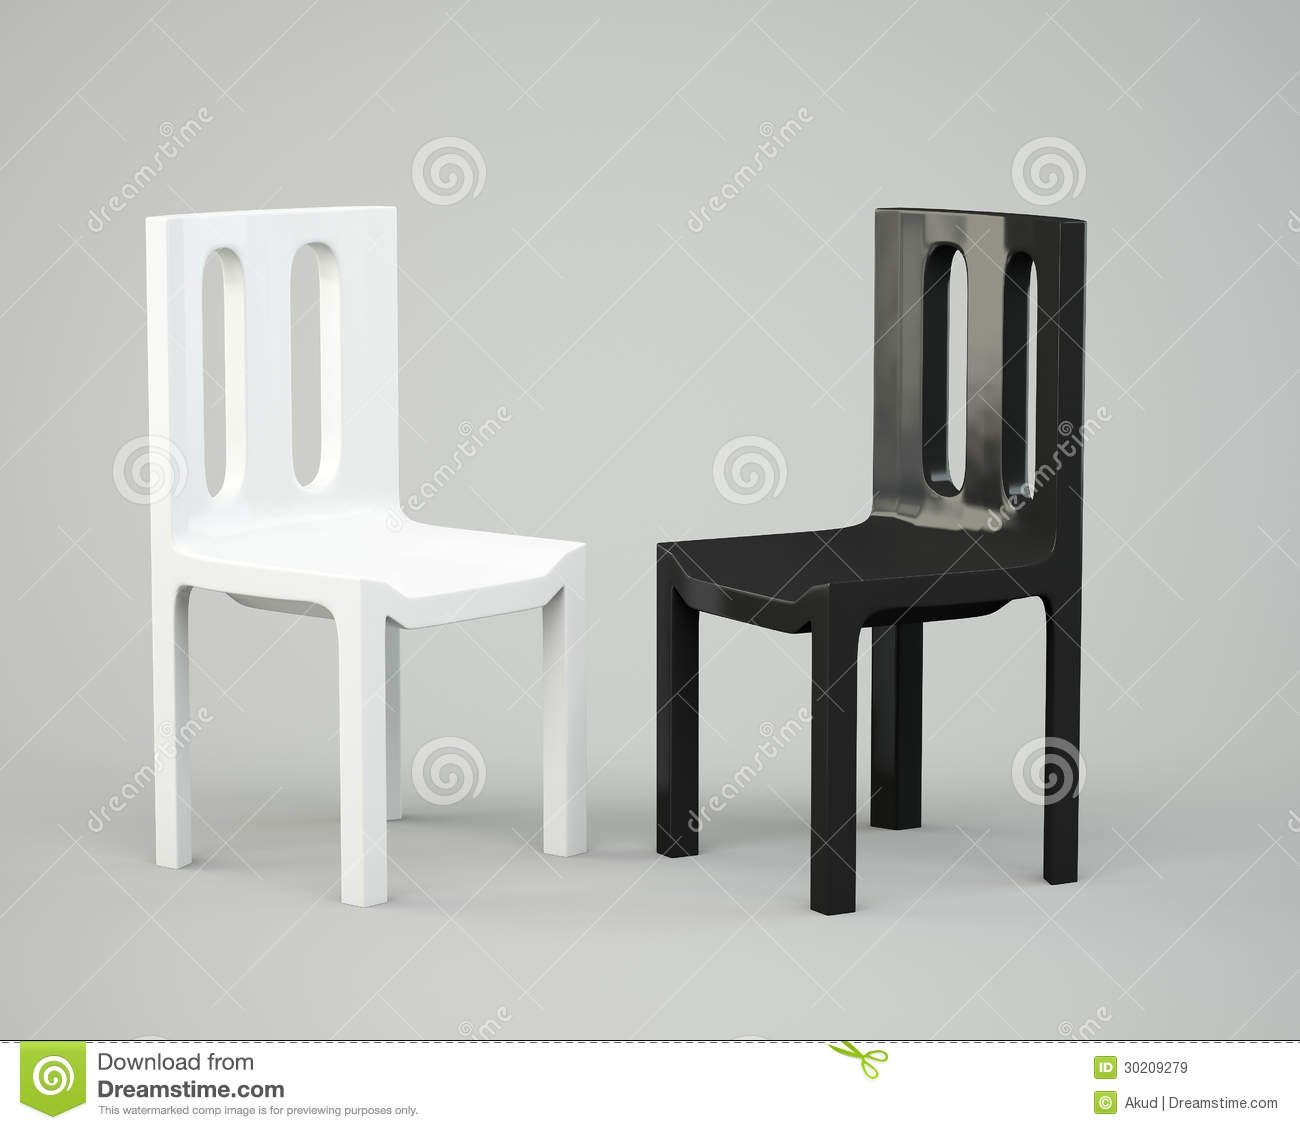 White and black chair